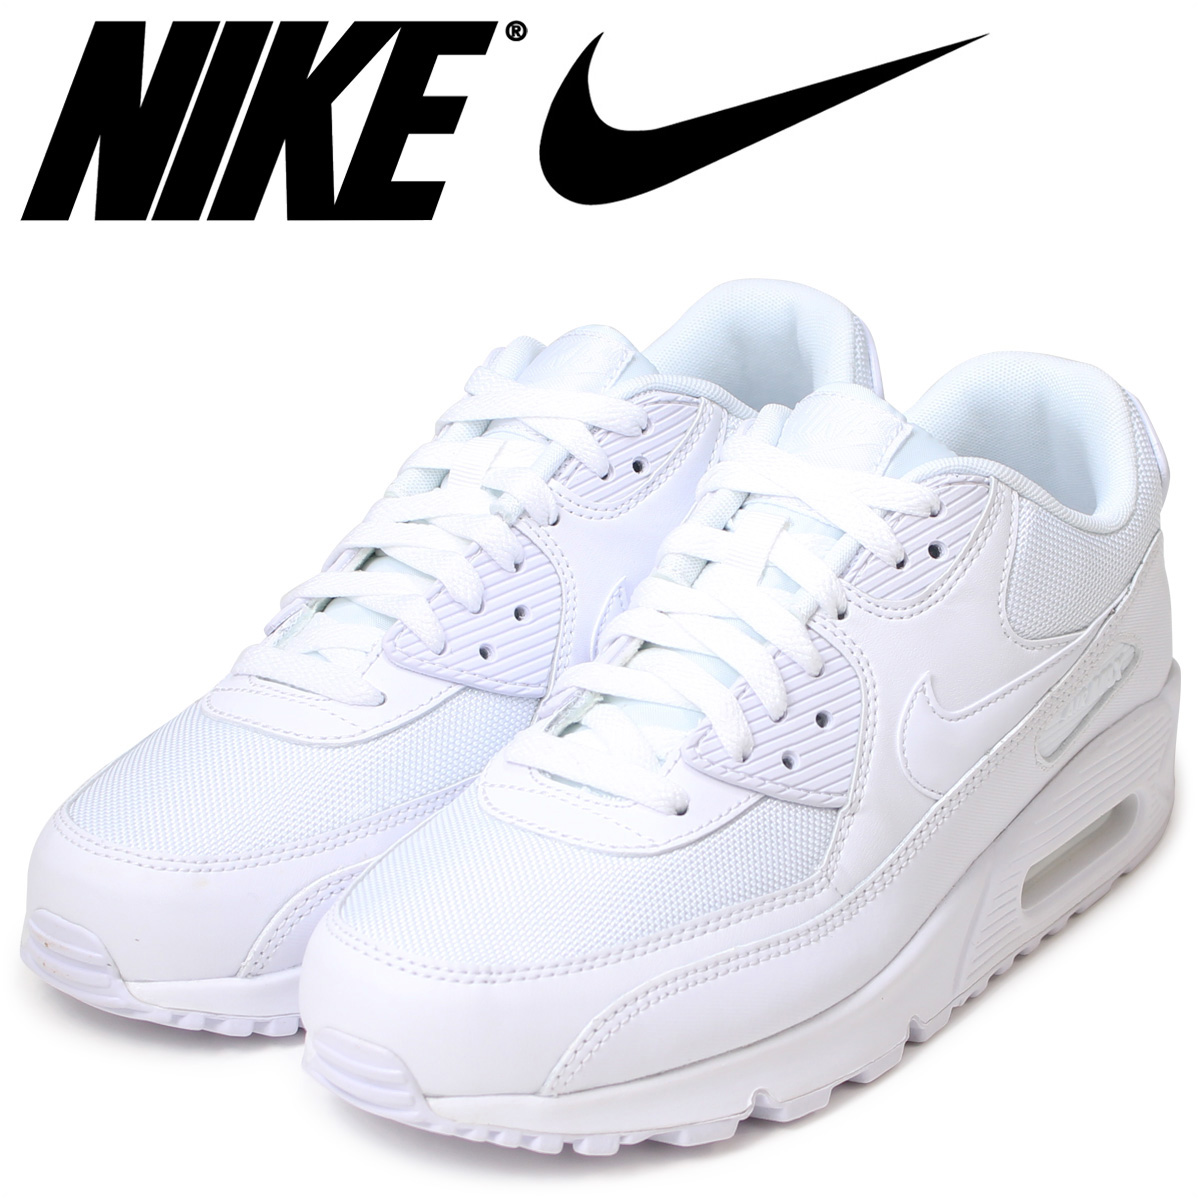 25e0058c631 Nike NIKE AIR MAX 90 ESSENTIAL sneakers Air Max 90 essential leather mens  Air Max 537384-111 WHITE WHITE white unisex  11   21 new in stock   regular